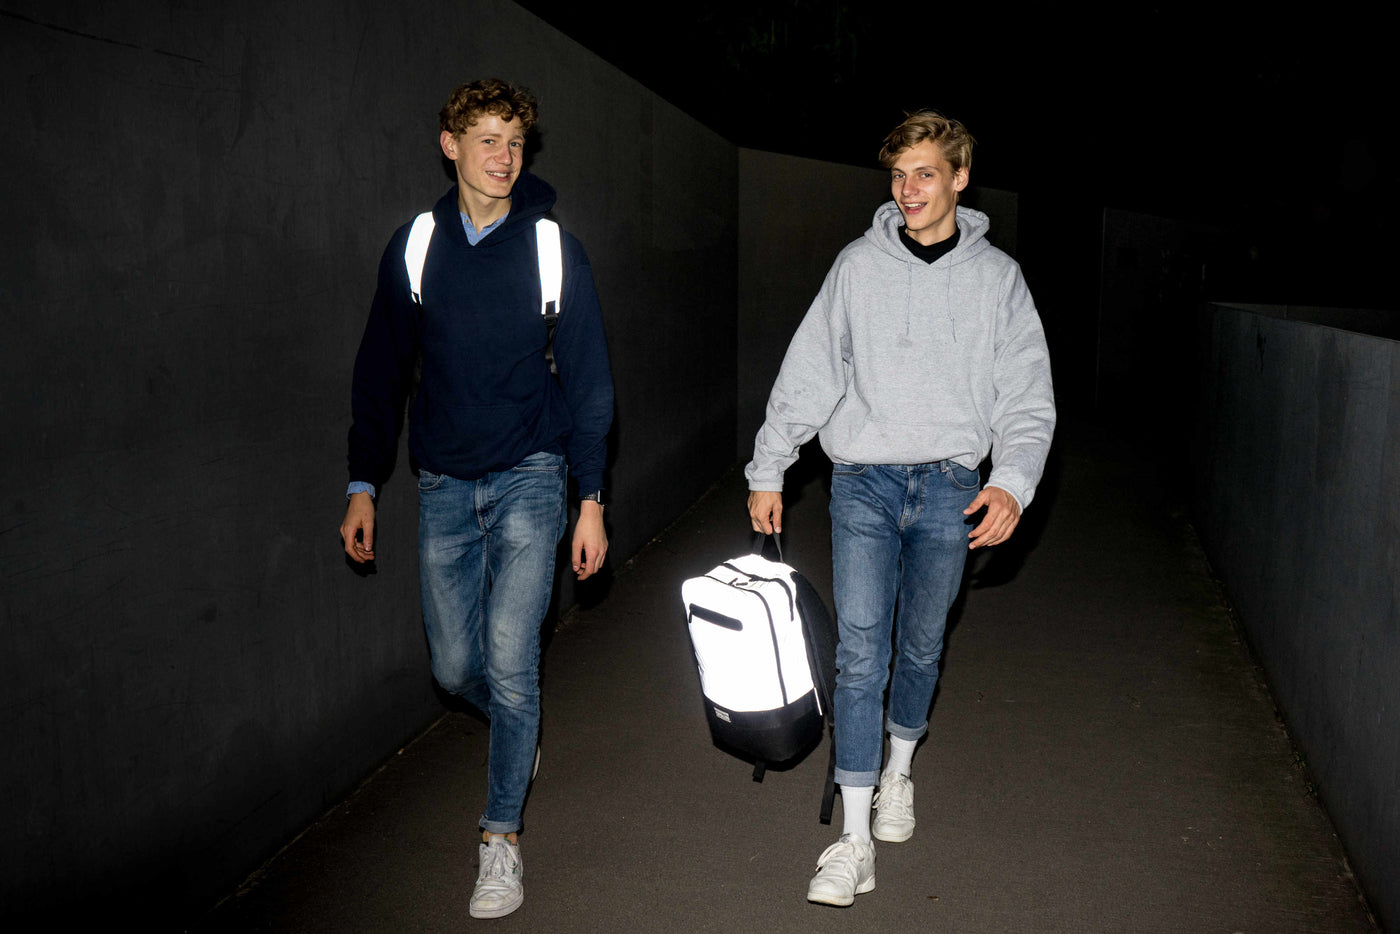 OAK25 Emil Woermann Jacob Leffers reflective backpack kickstarter founders